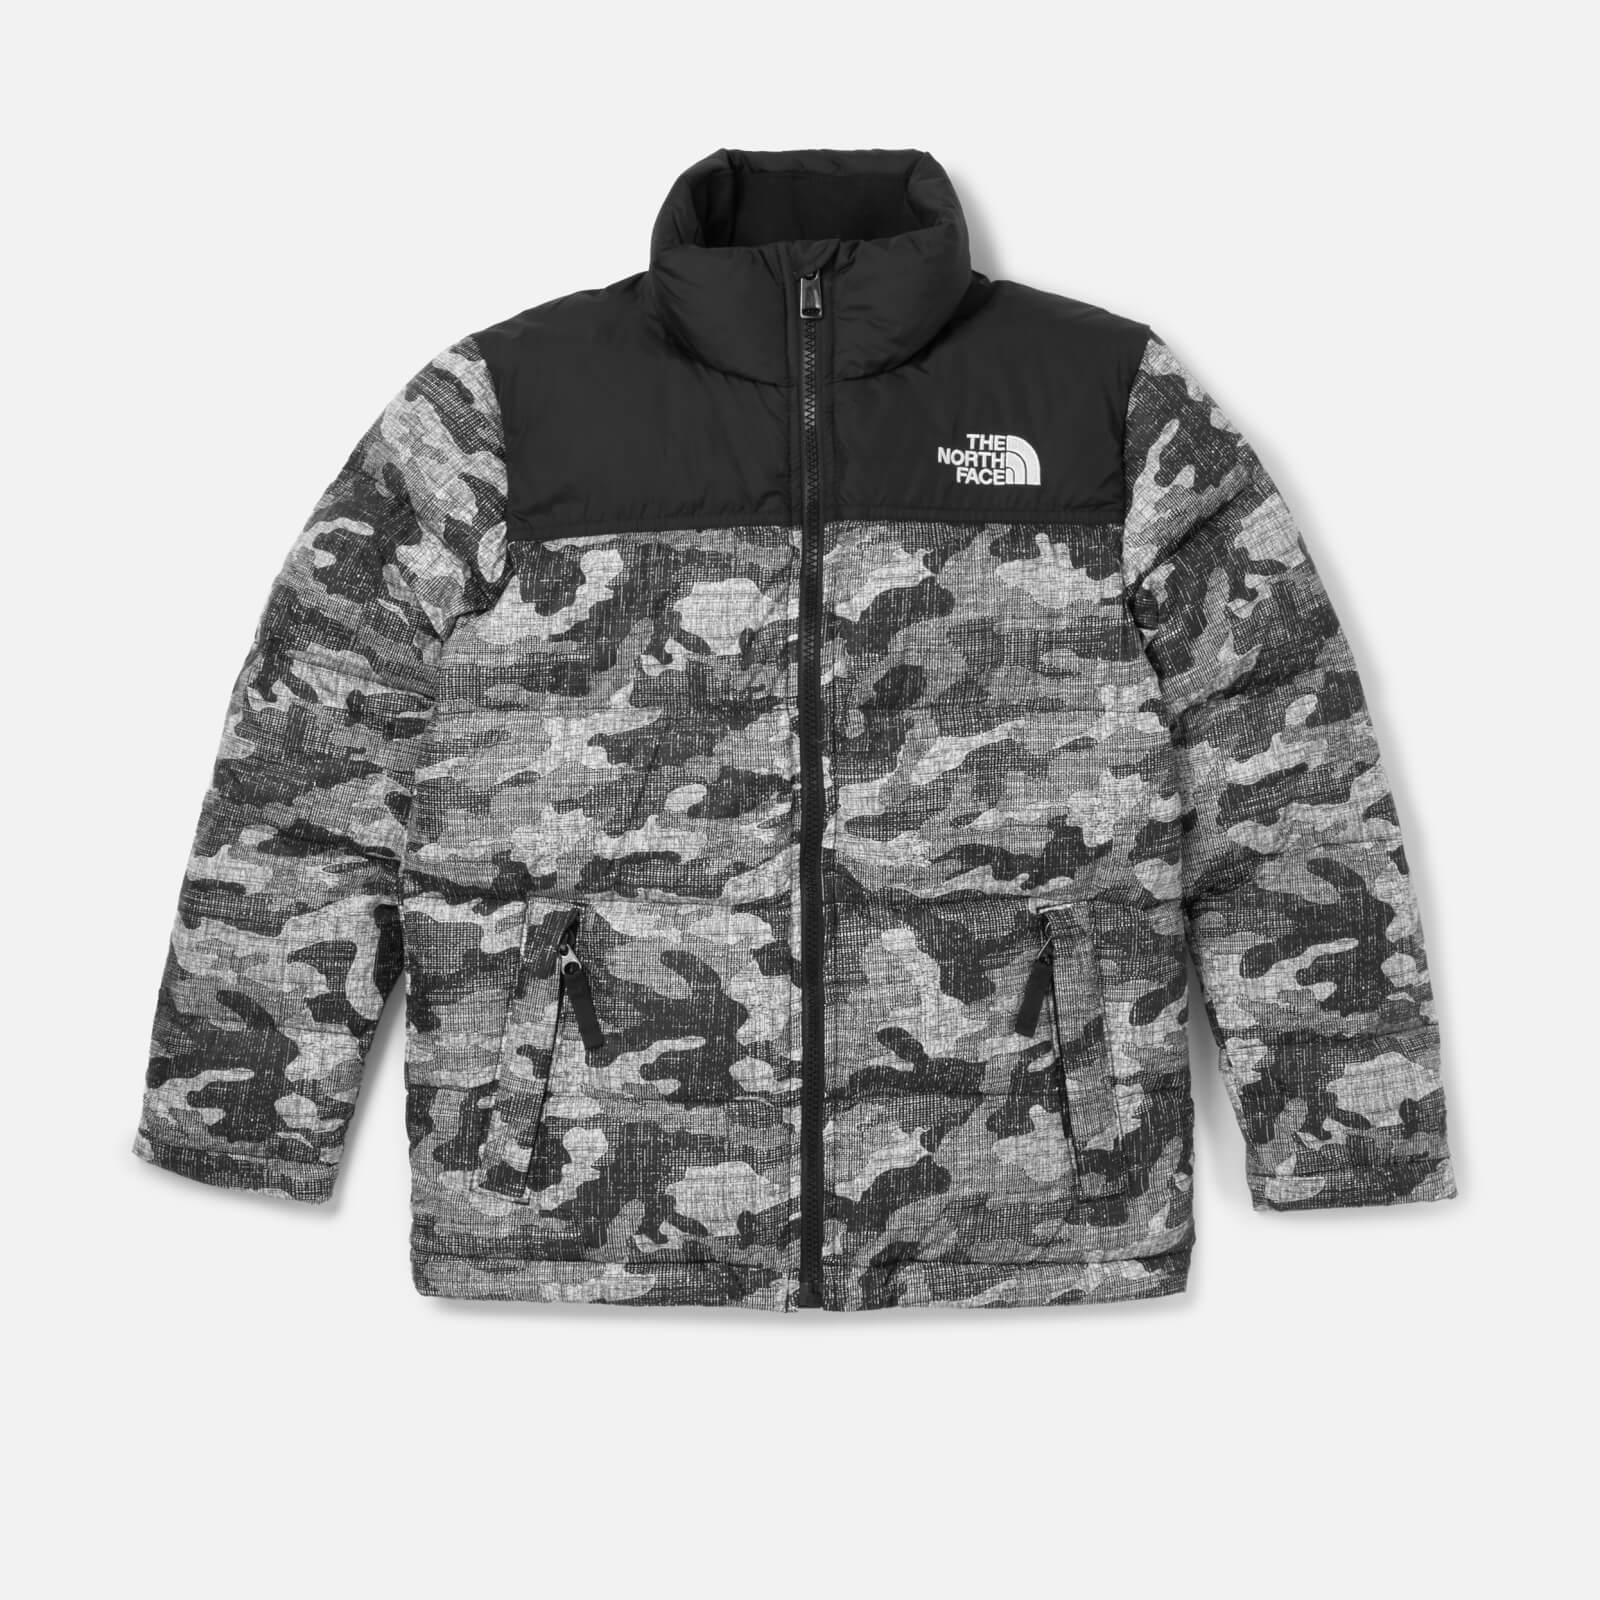 ab3765816fbe The North Face Boys  Nuptse Down Jacket - TNF Black Textured Camo Print  Clothing